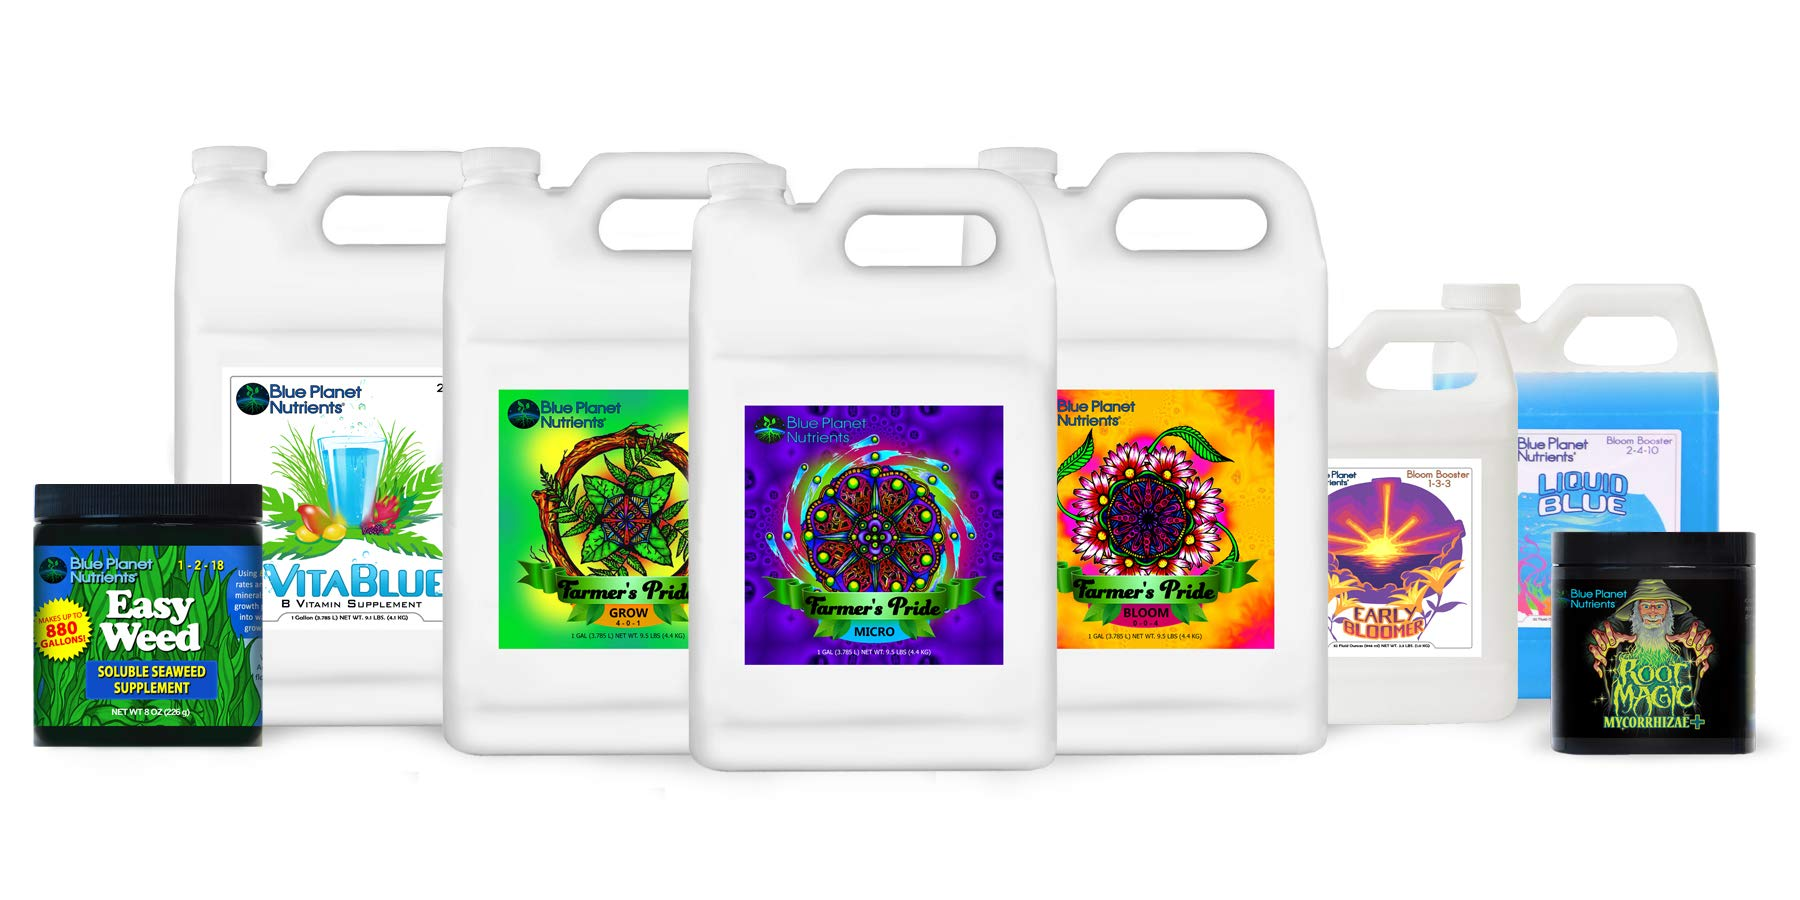 Blue Planet Nutrients Farmer's Pride Organic Blend High Yield System | Grow Herbs Vegetables Fruits Flowers | Hydroponic Soil Coco Coir Soil-Less | Complete Kit Bundle for All Plants & Gardens by Blue Planet Nutrients